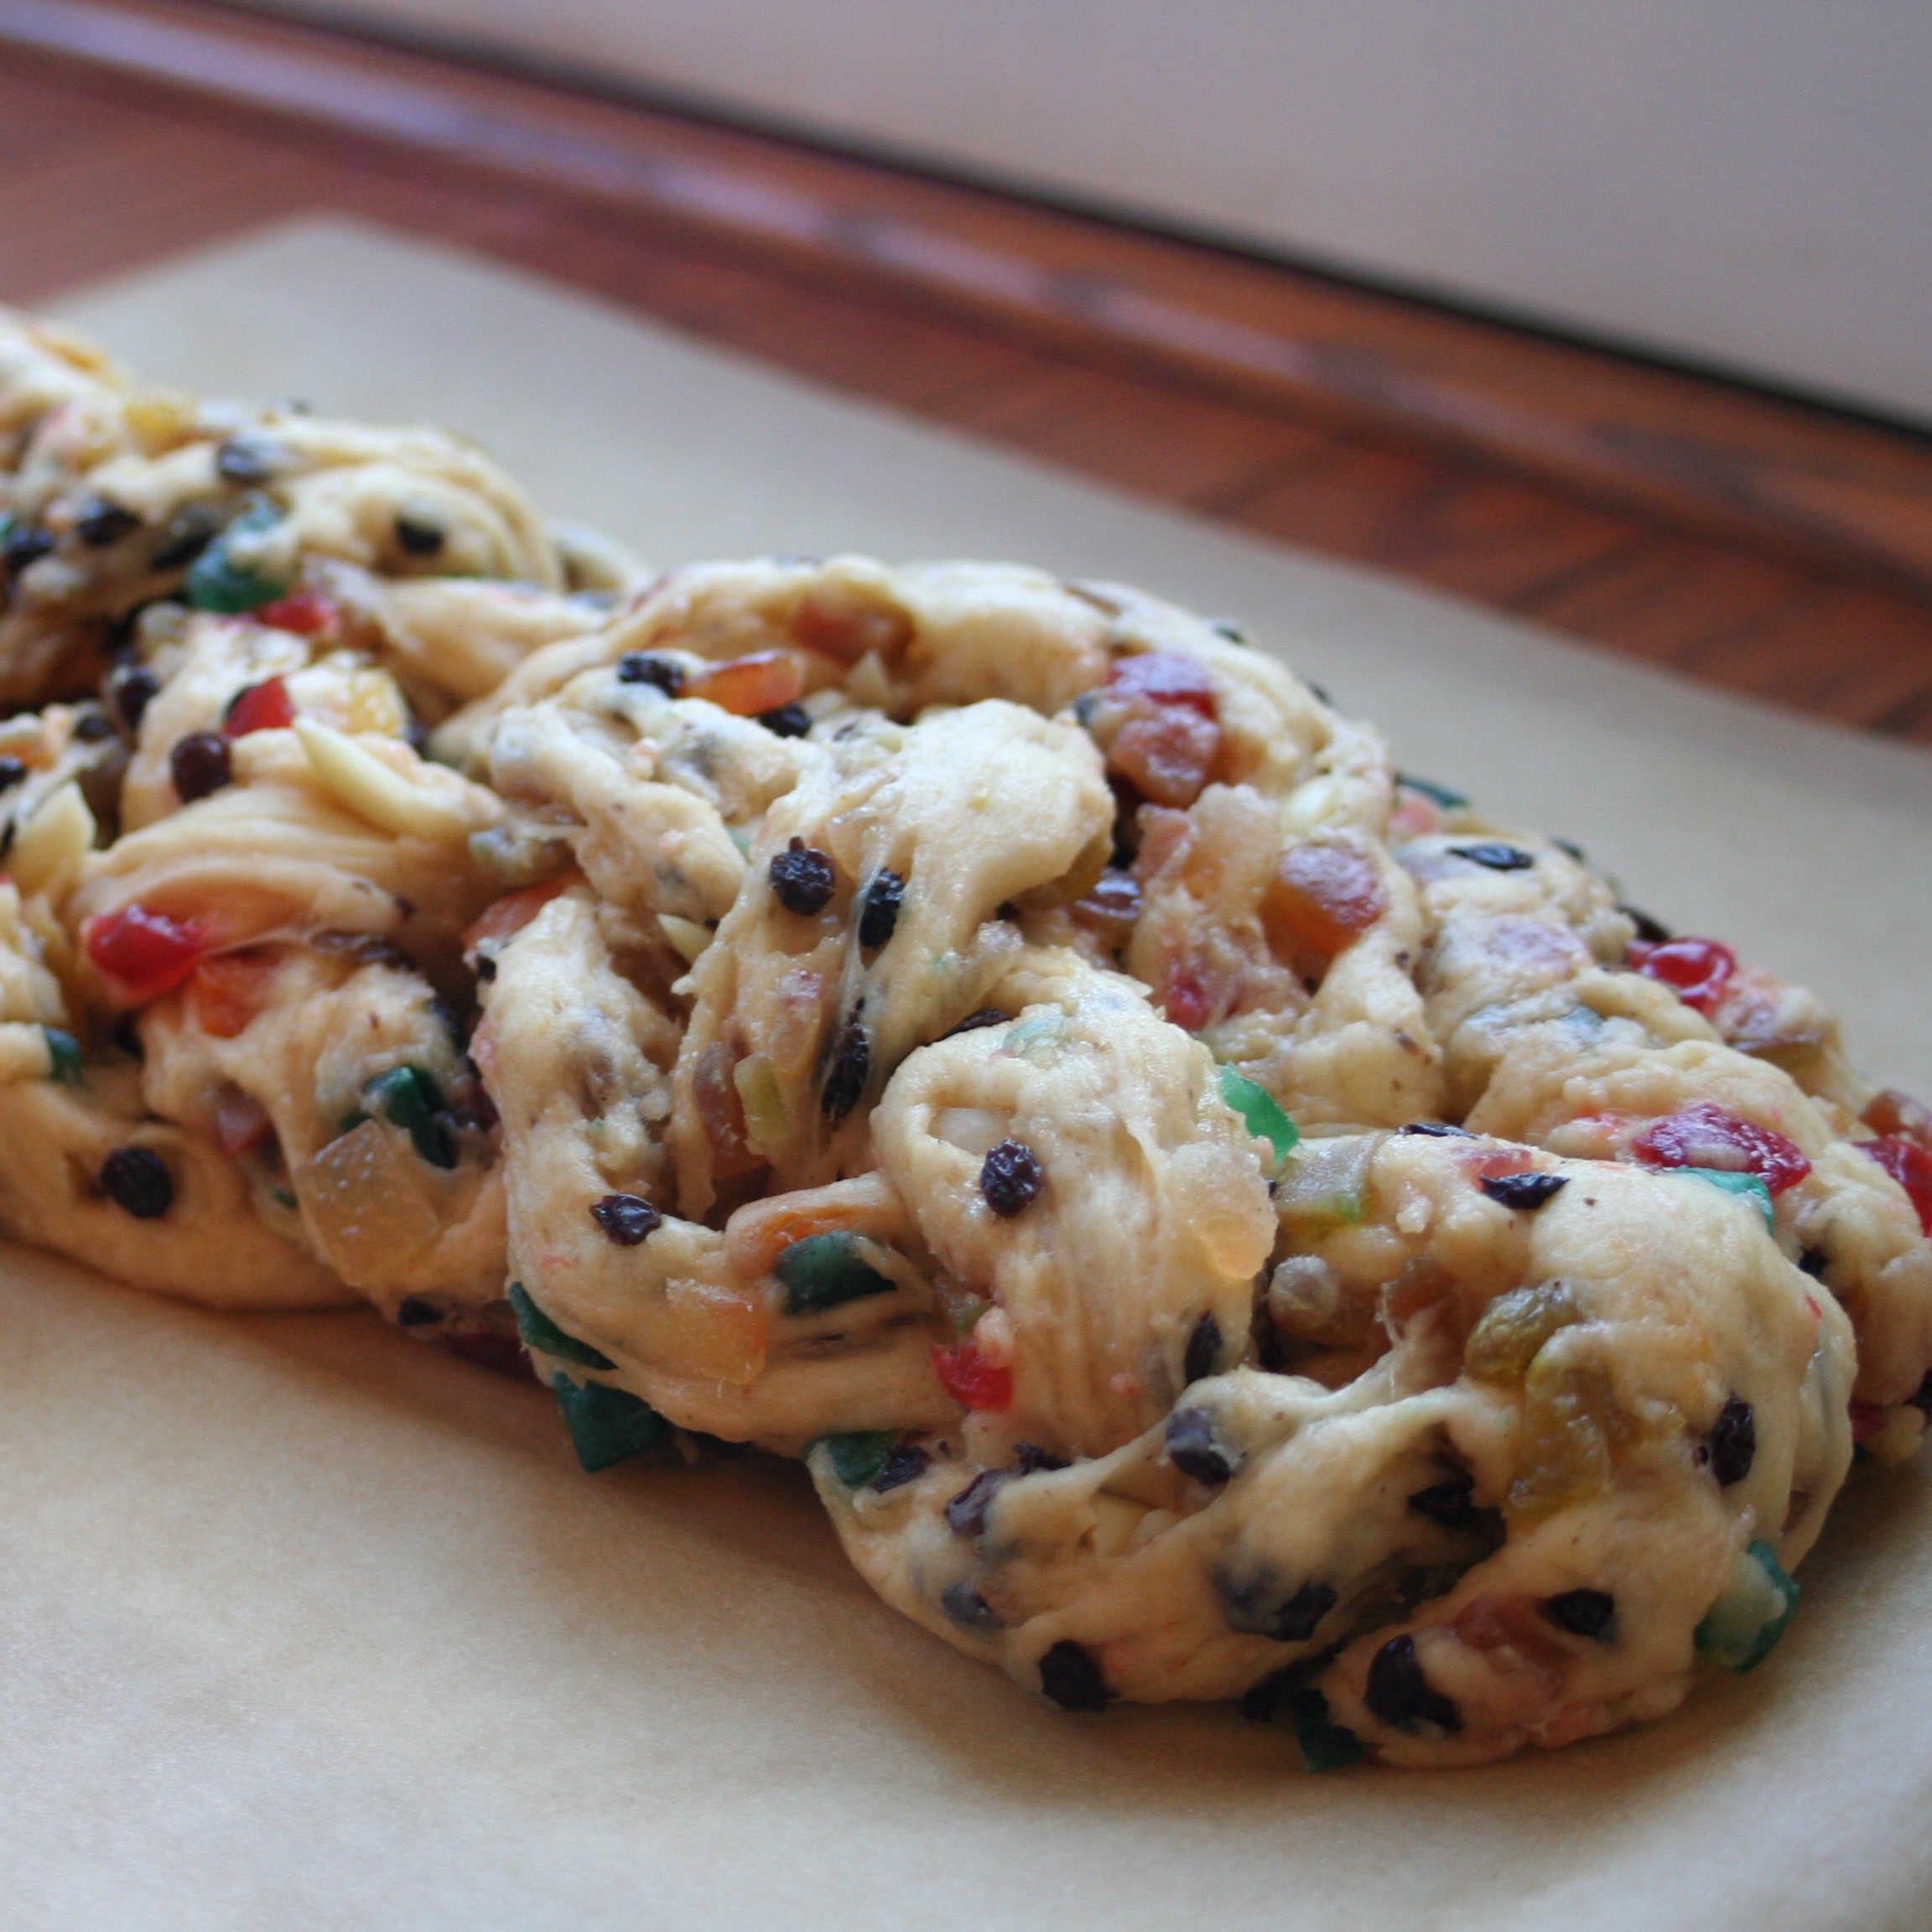 File:Stollen with candied fruits and nuts.jpg - Wikimedia Commons